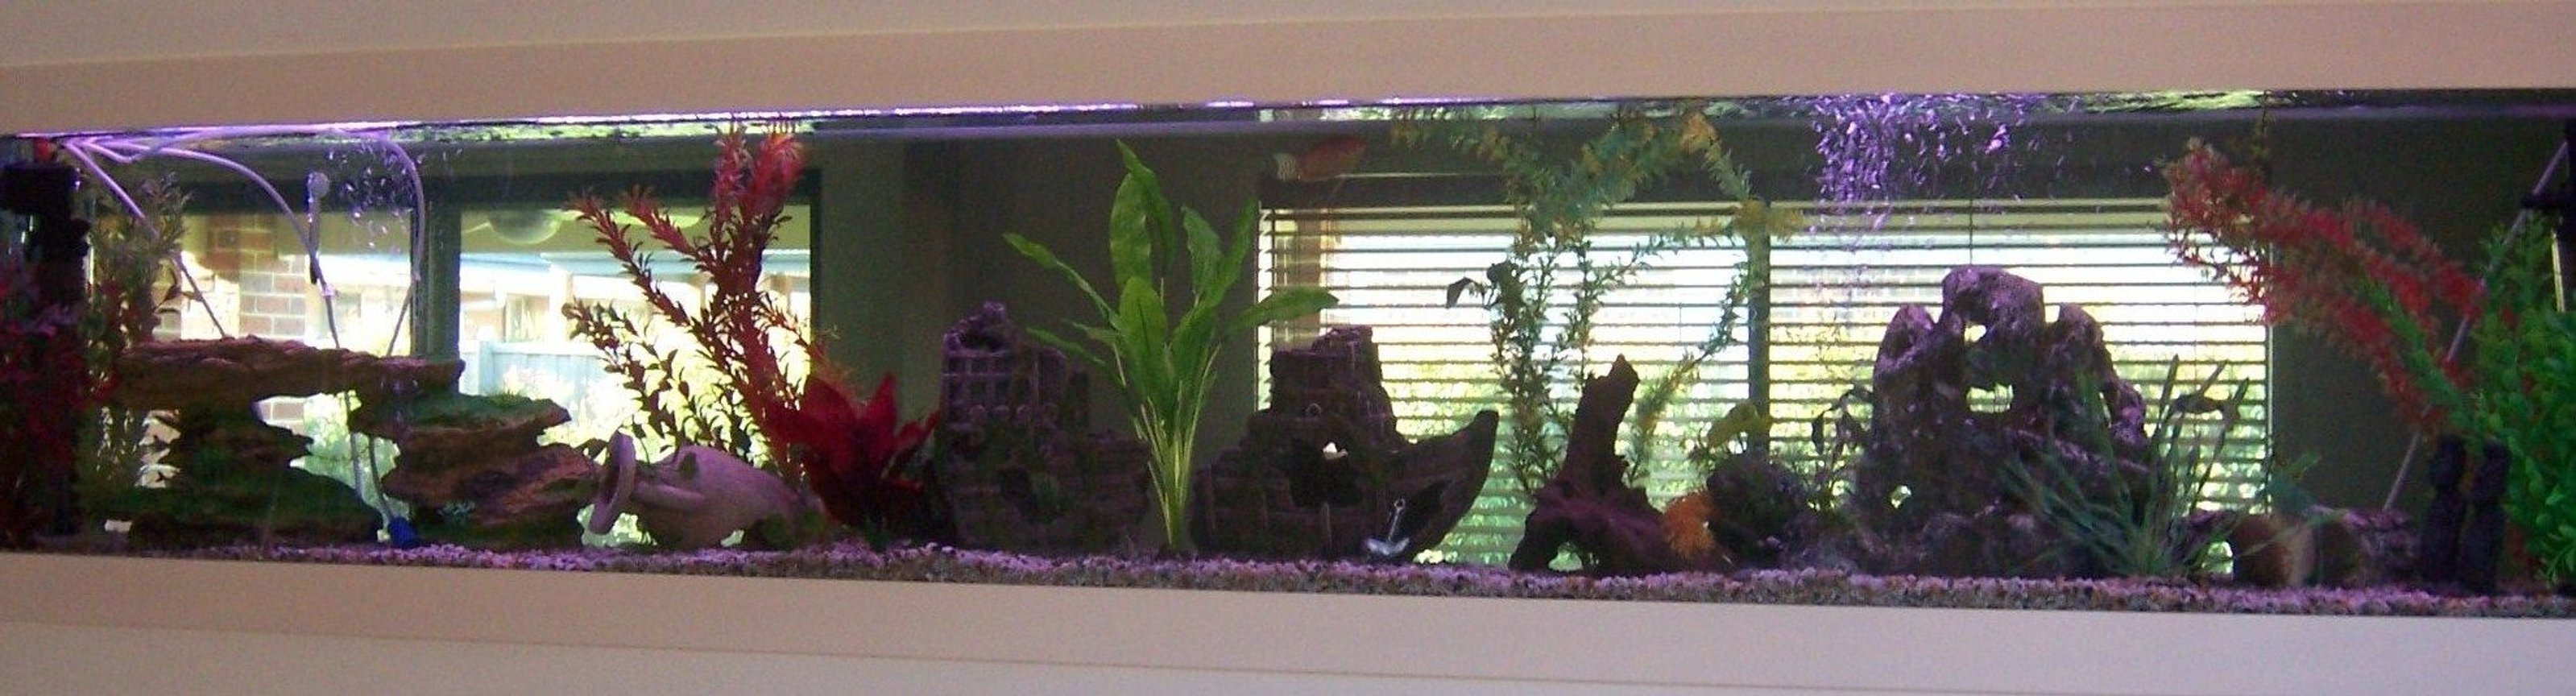 70 gallons freshwater fish tank (mostly fish and non-living decorations) - my 8ft in wall tank!